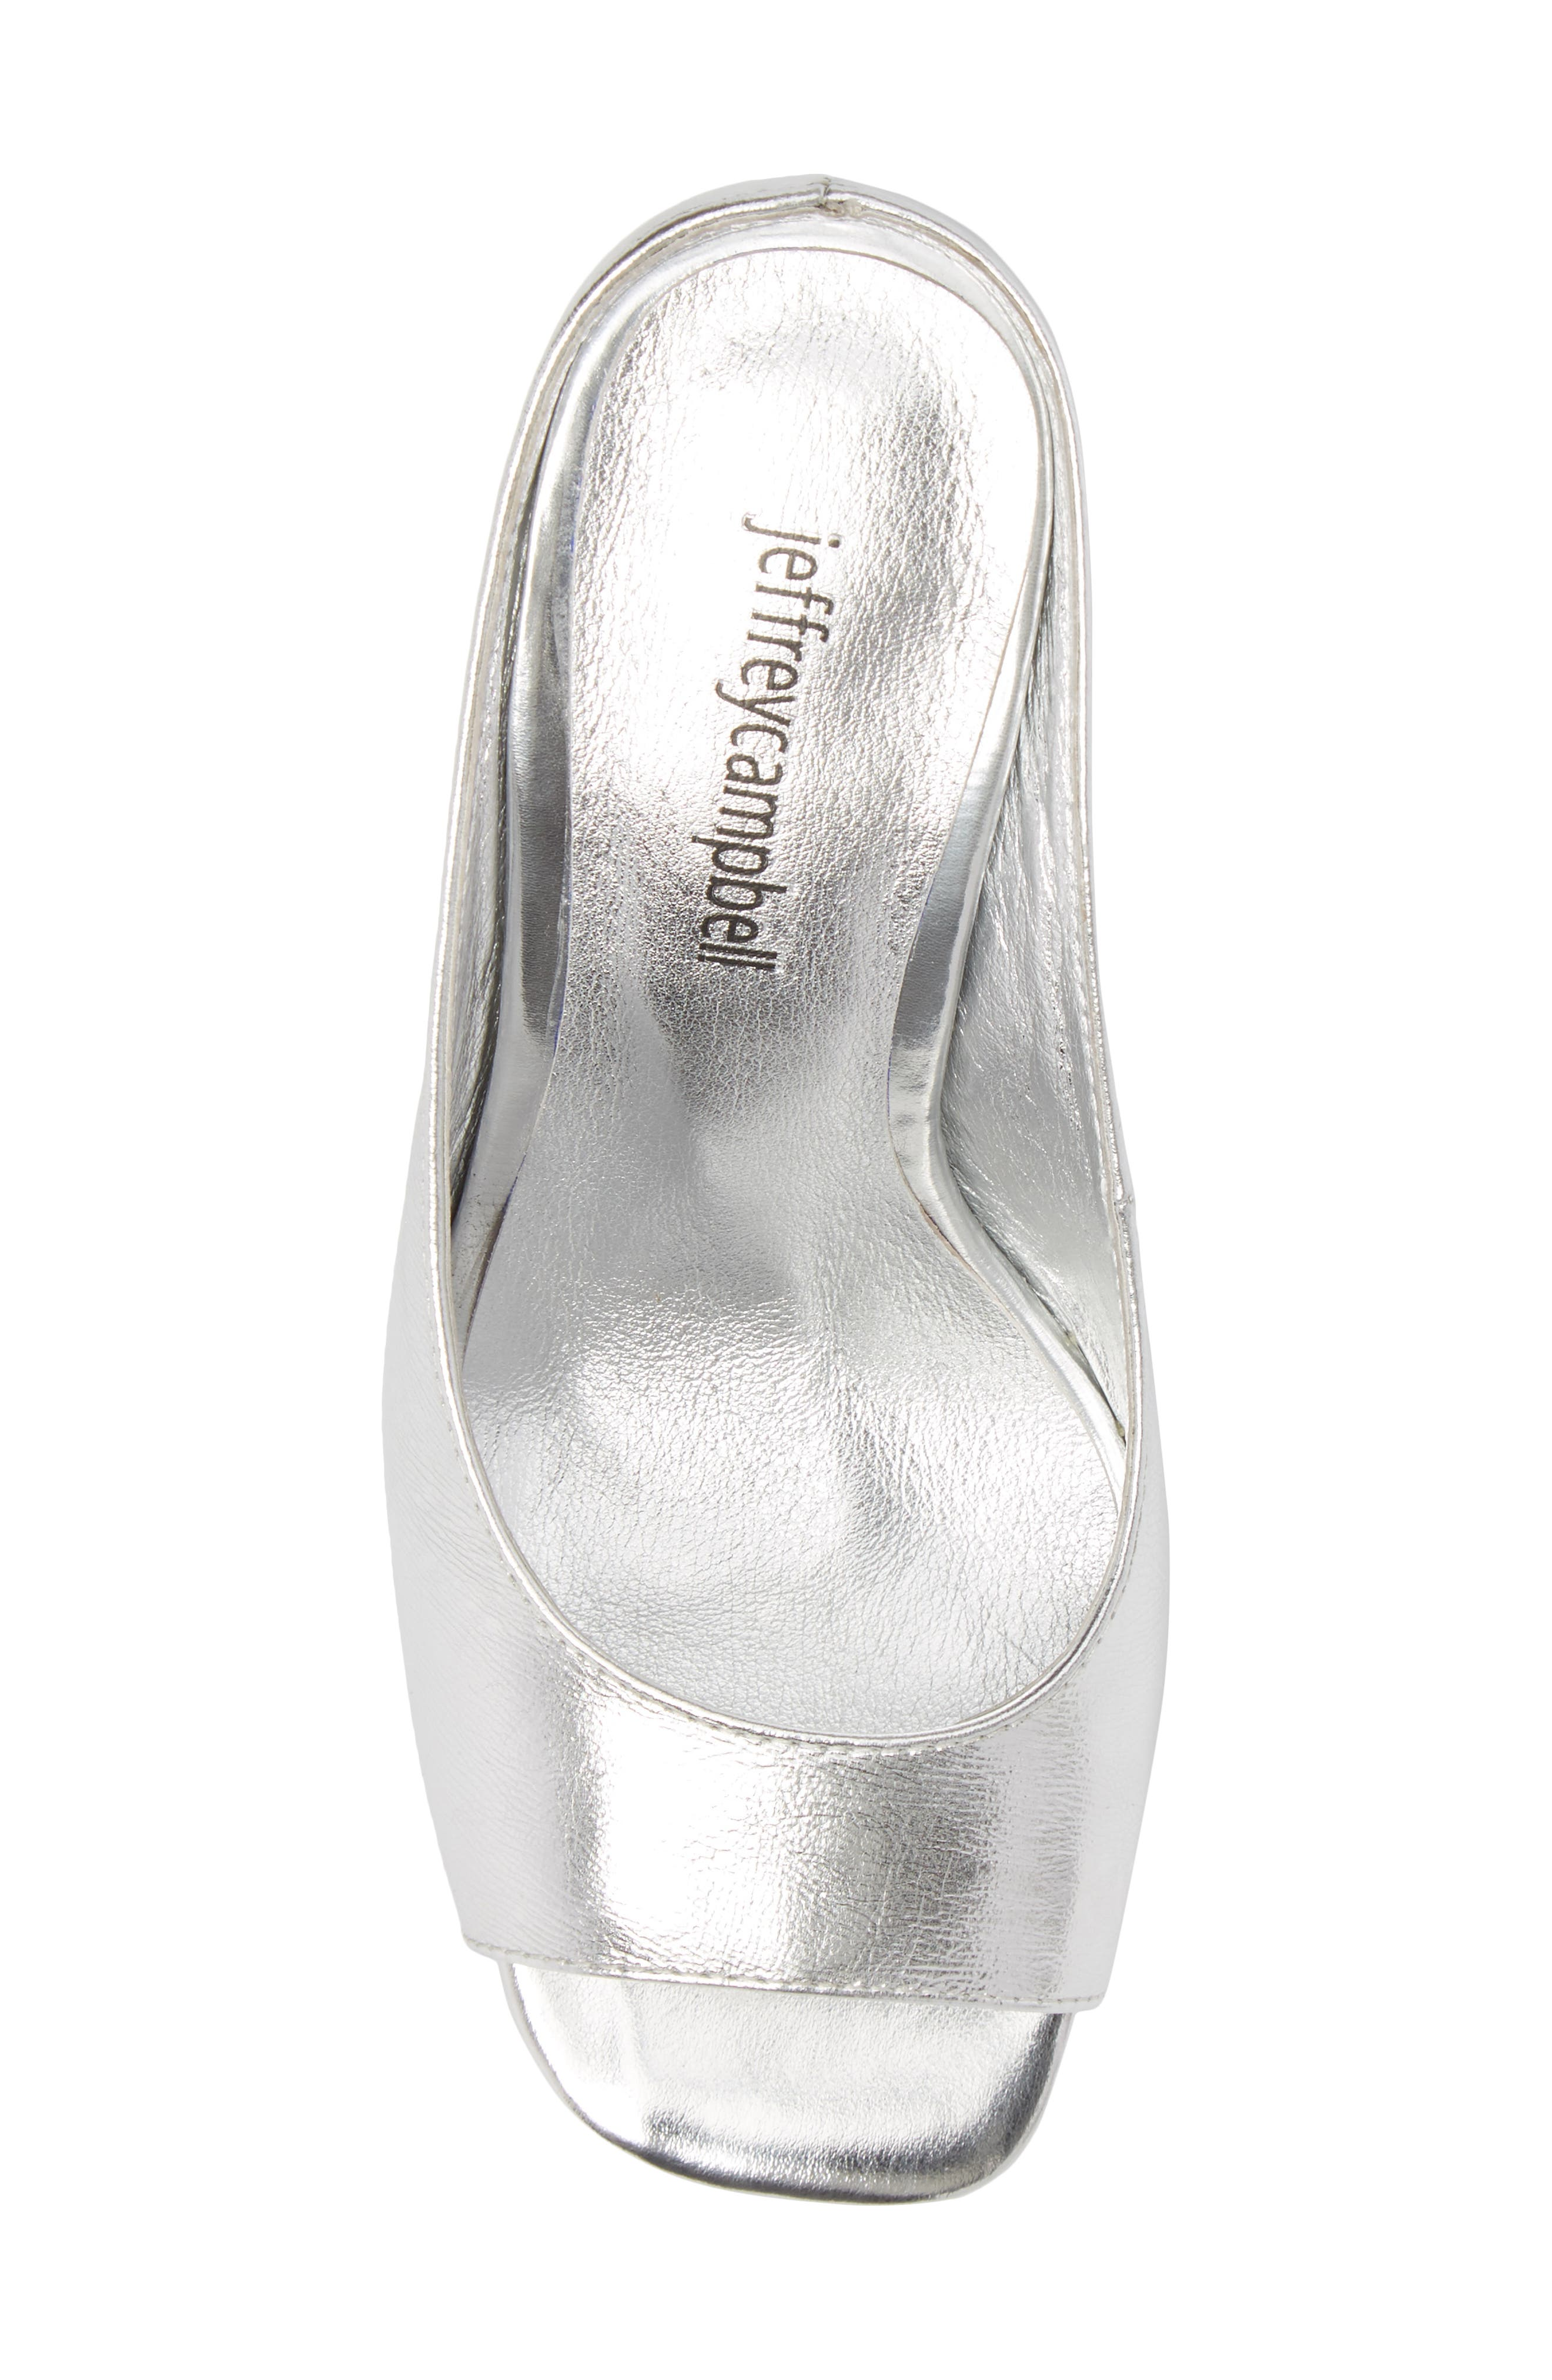 Generous Wedge Sandal,                             Alternate thumbnail 5, color,                             Silver Leather